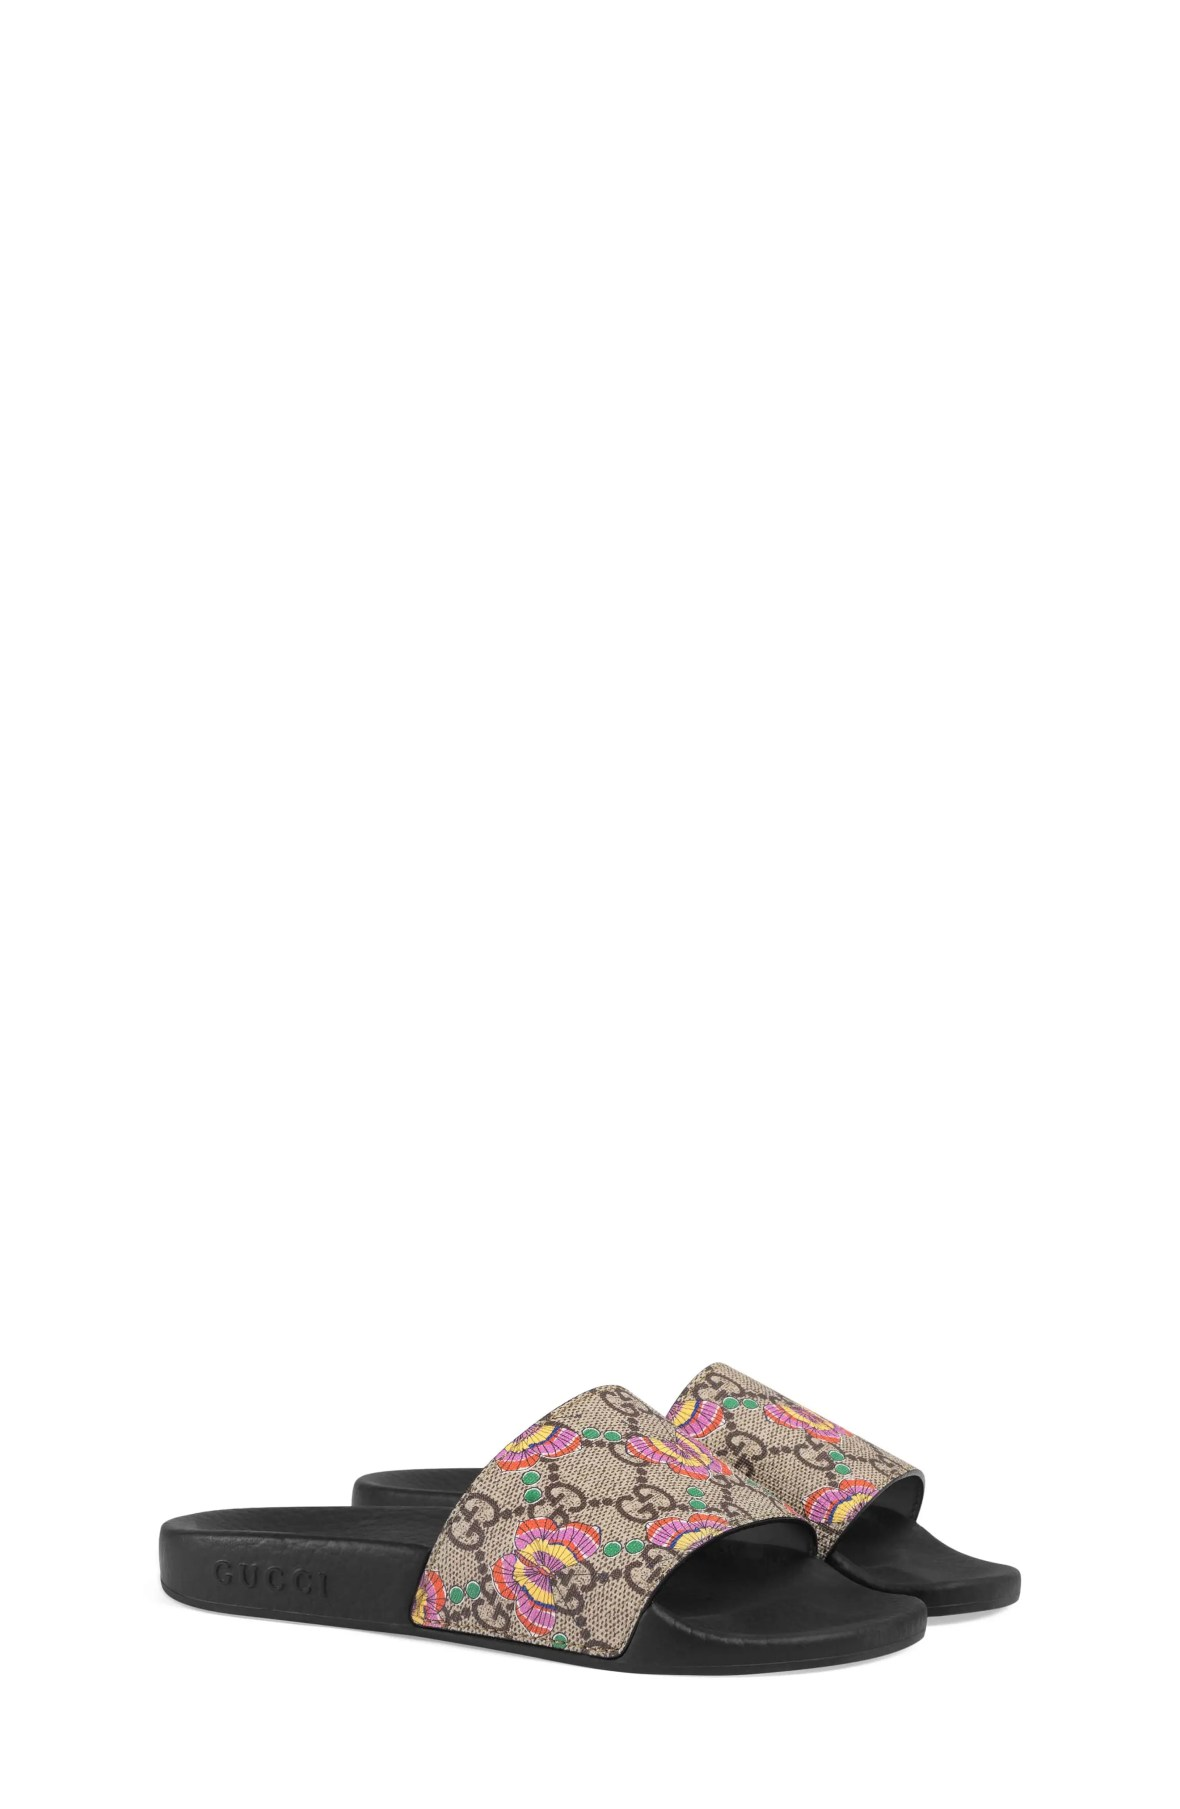 Gucci GG Supreme Butterfly Slide Sandal (Toddler & Little Kid)